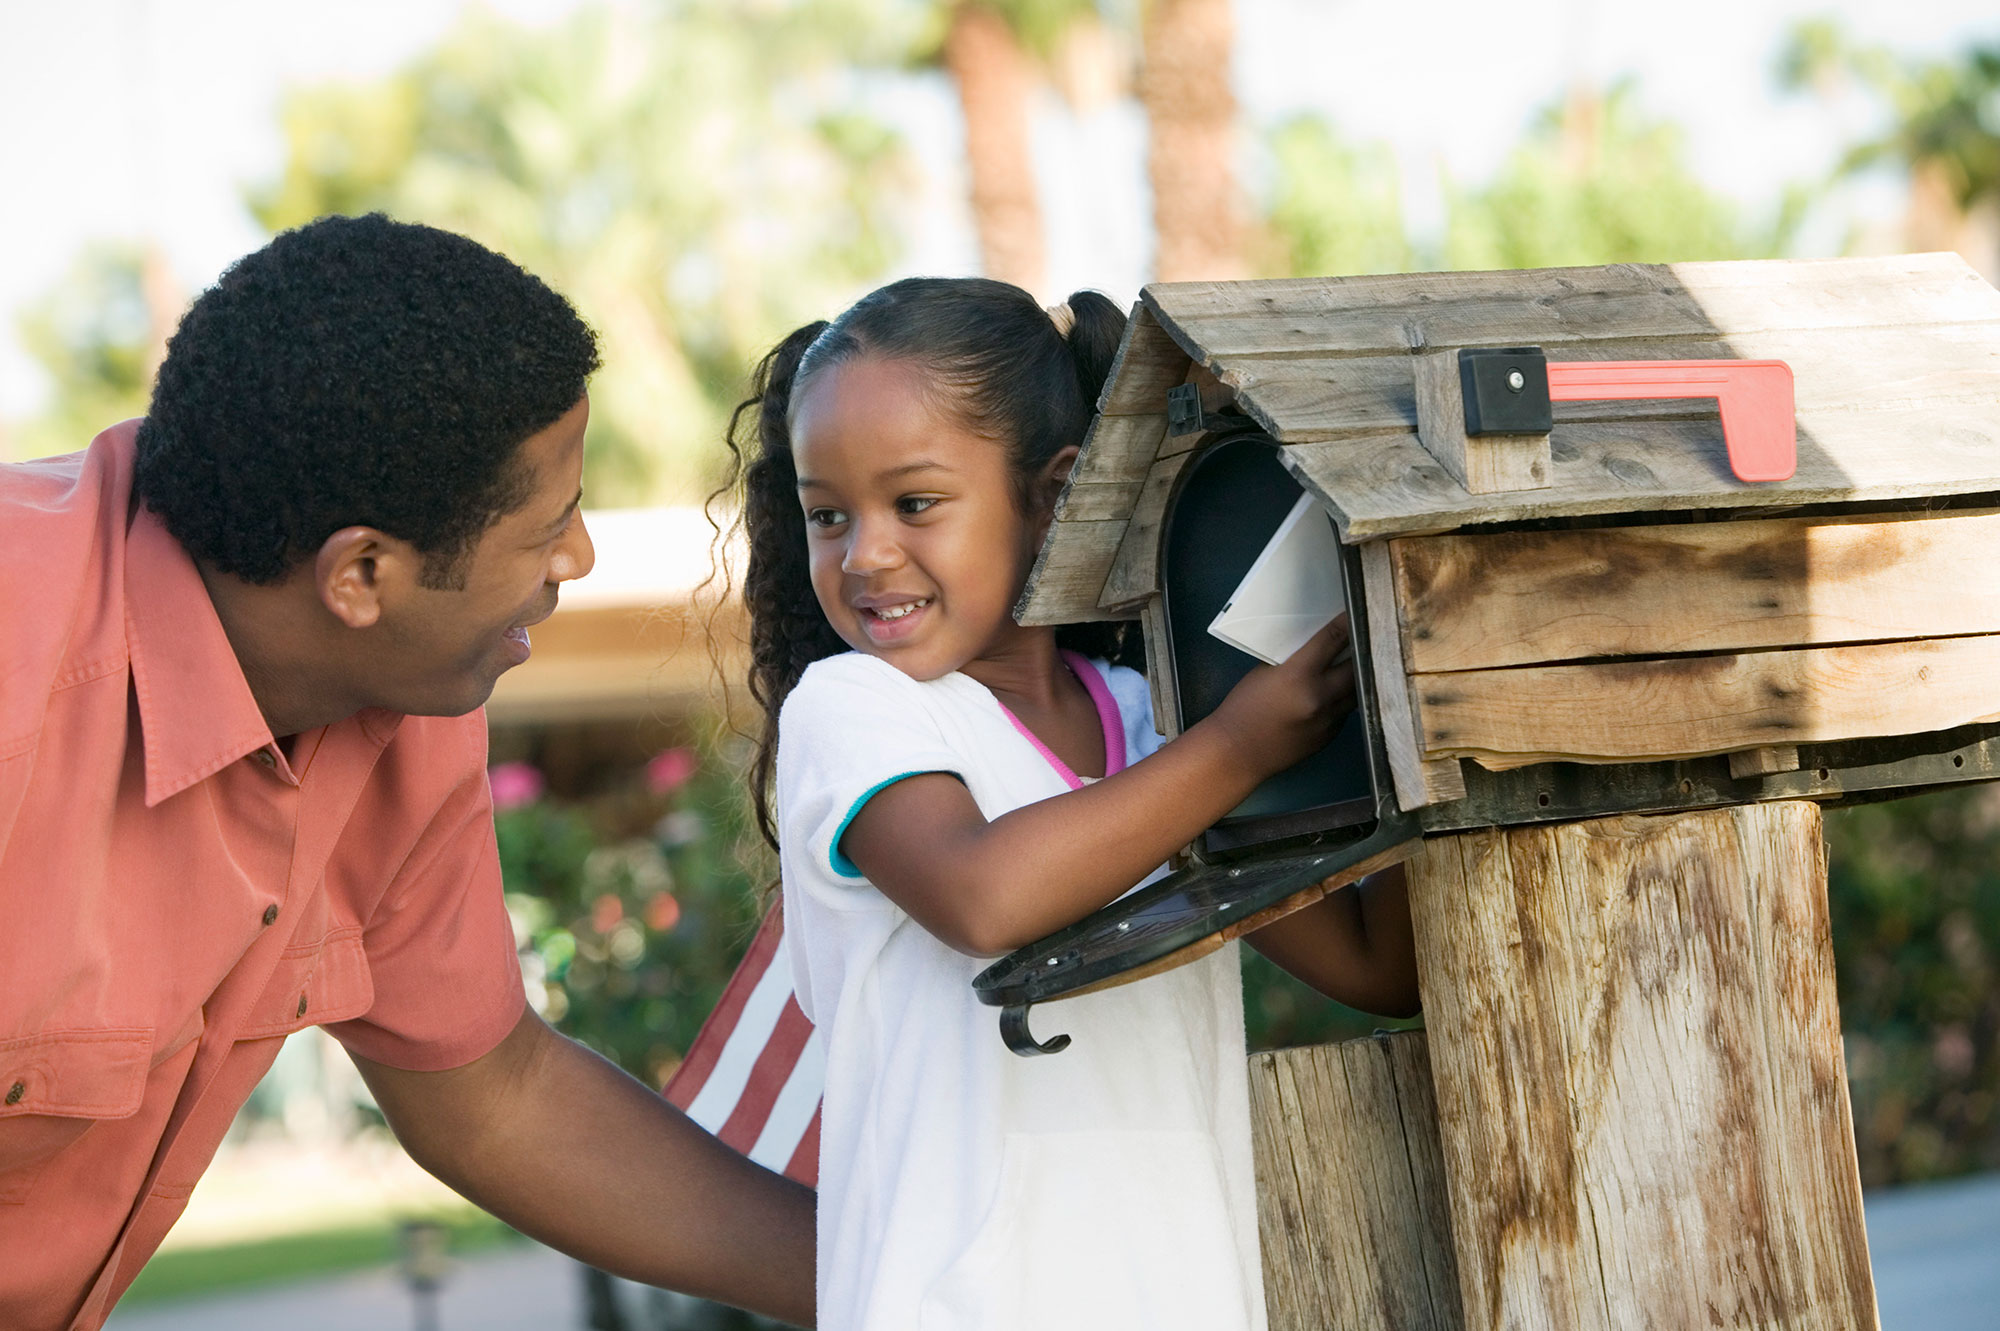 Father and daughter checking mailbox